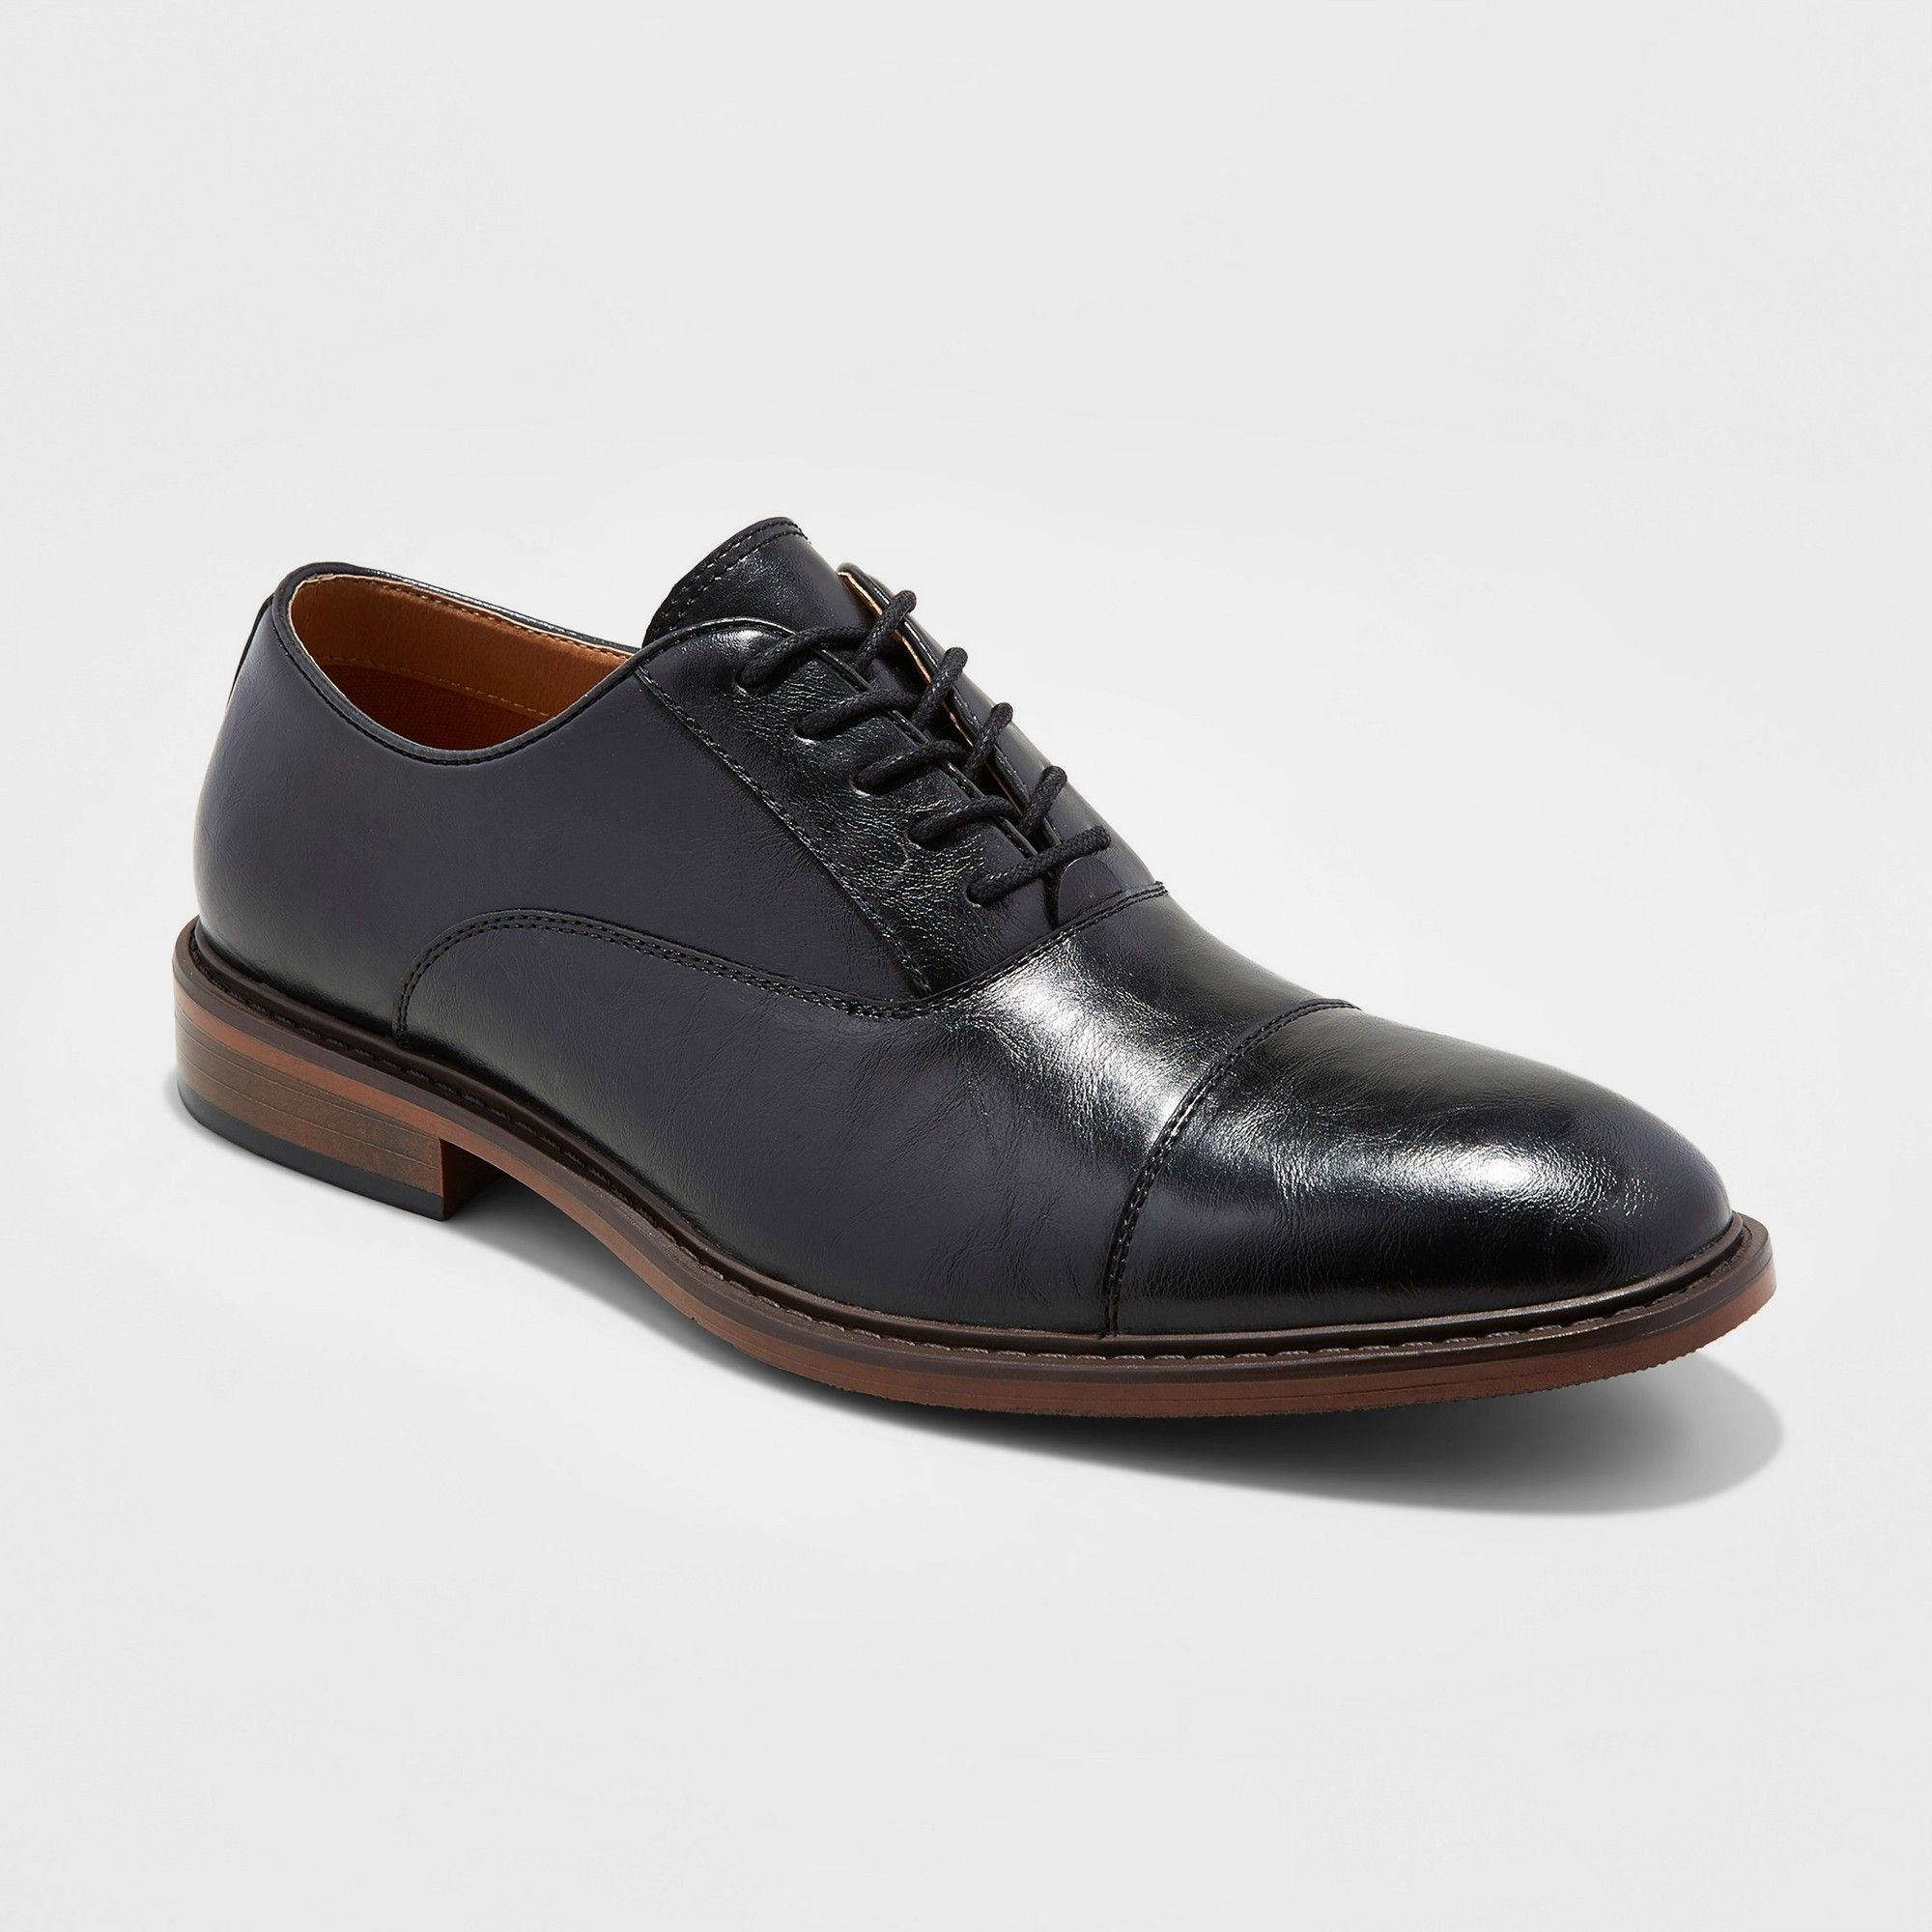 7ea84314044 Men s Joseph Captoe Dress Shoe - Goodfellow   Co Black 10.5 ...